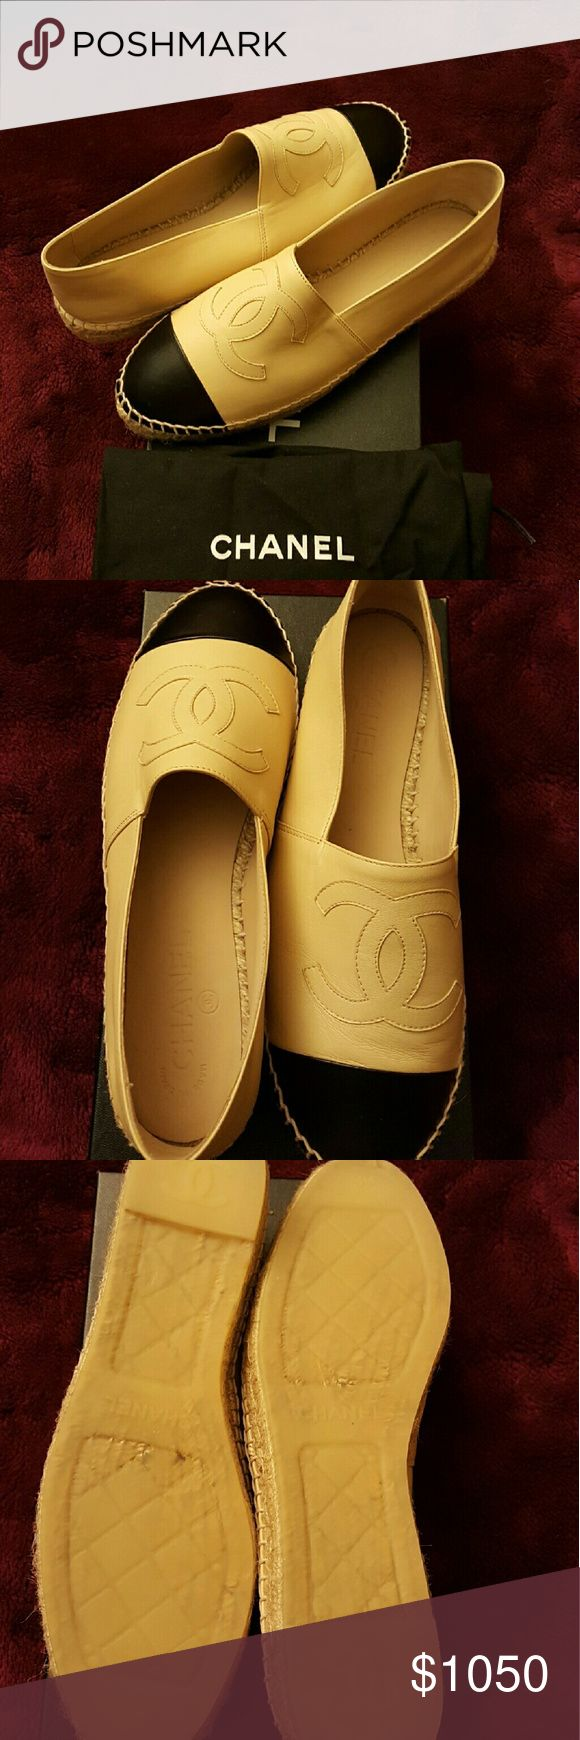 Chanel black/beige espadrilles size 9 NWT Chanel beige/black leather espadrilles. Original box and dust bag for shoes included. Size Eur 39 / Size 9. Condition: New with tags. Original box included. No visible signs of wear. CHANEL Shoes Espadrilles